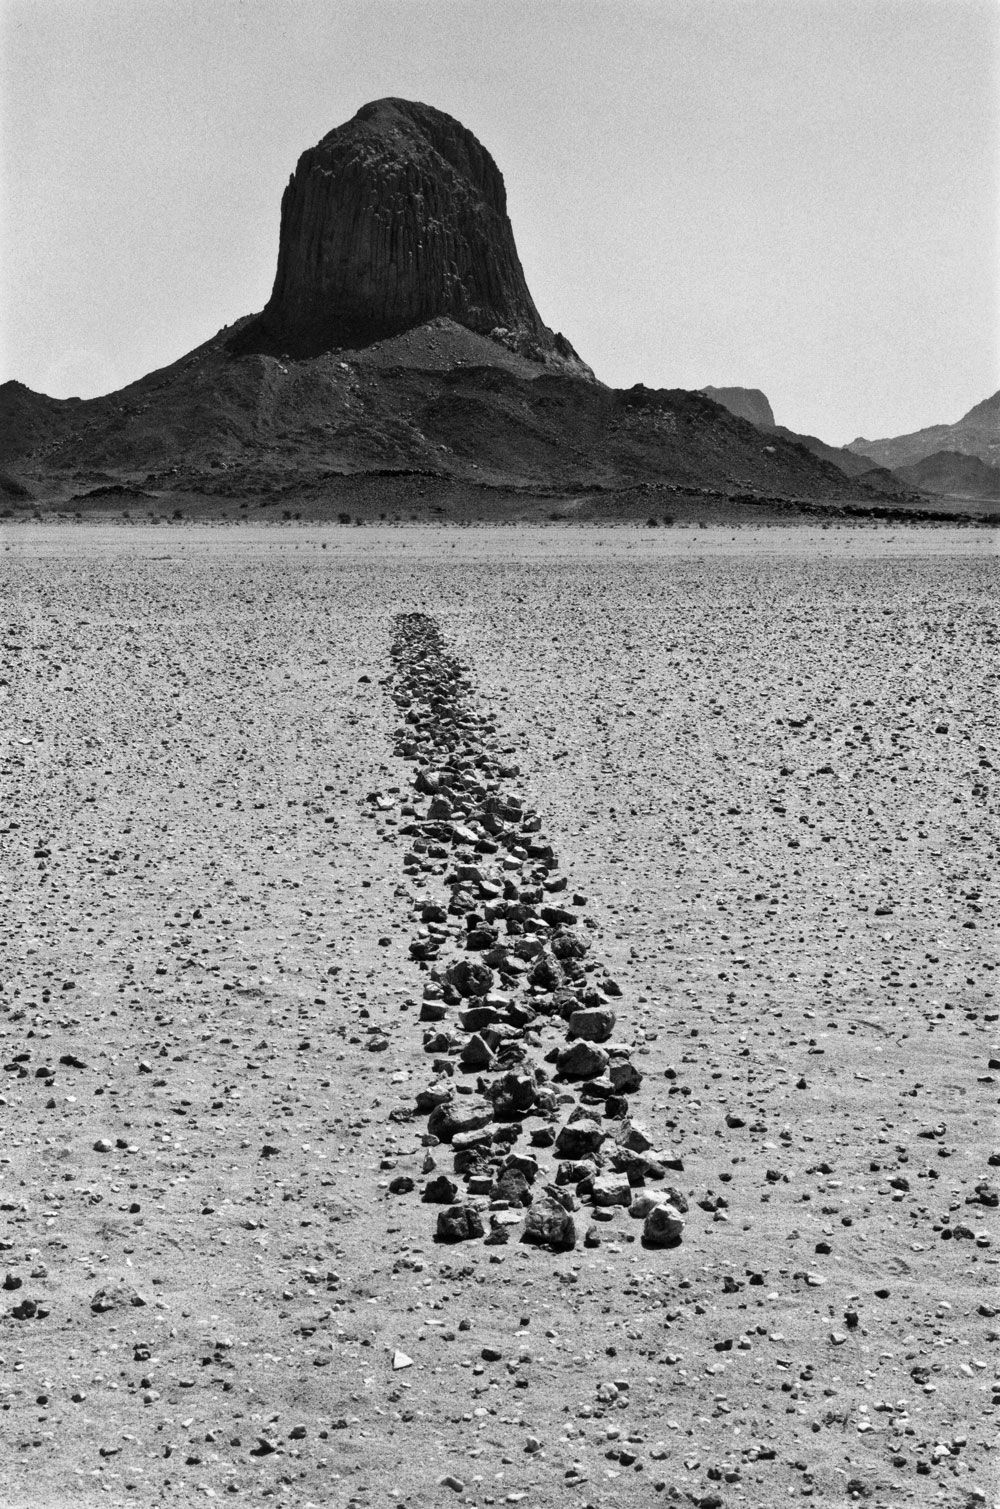 richard long ltdrichard long land art, richard long art, richard long facts, richard long interview, richard long photography, richard long gt, richard long artista, richard long dj, richard long a line made by walking, richard long artist, richard long tall sally, richard long ltd, richard long, richard long actor, richard long transport, richard long biography, richard long big valley, richard long sound system, richard long bv, richard long bio